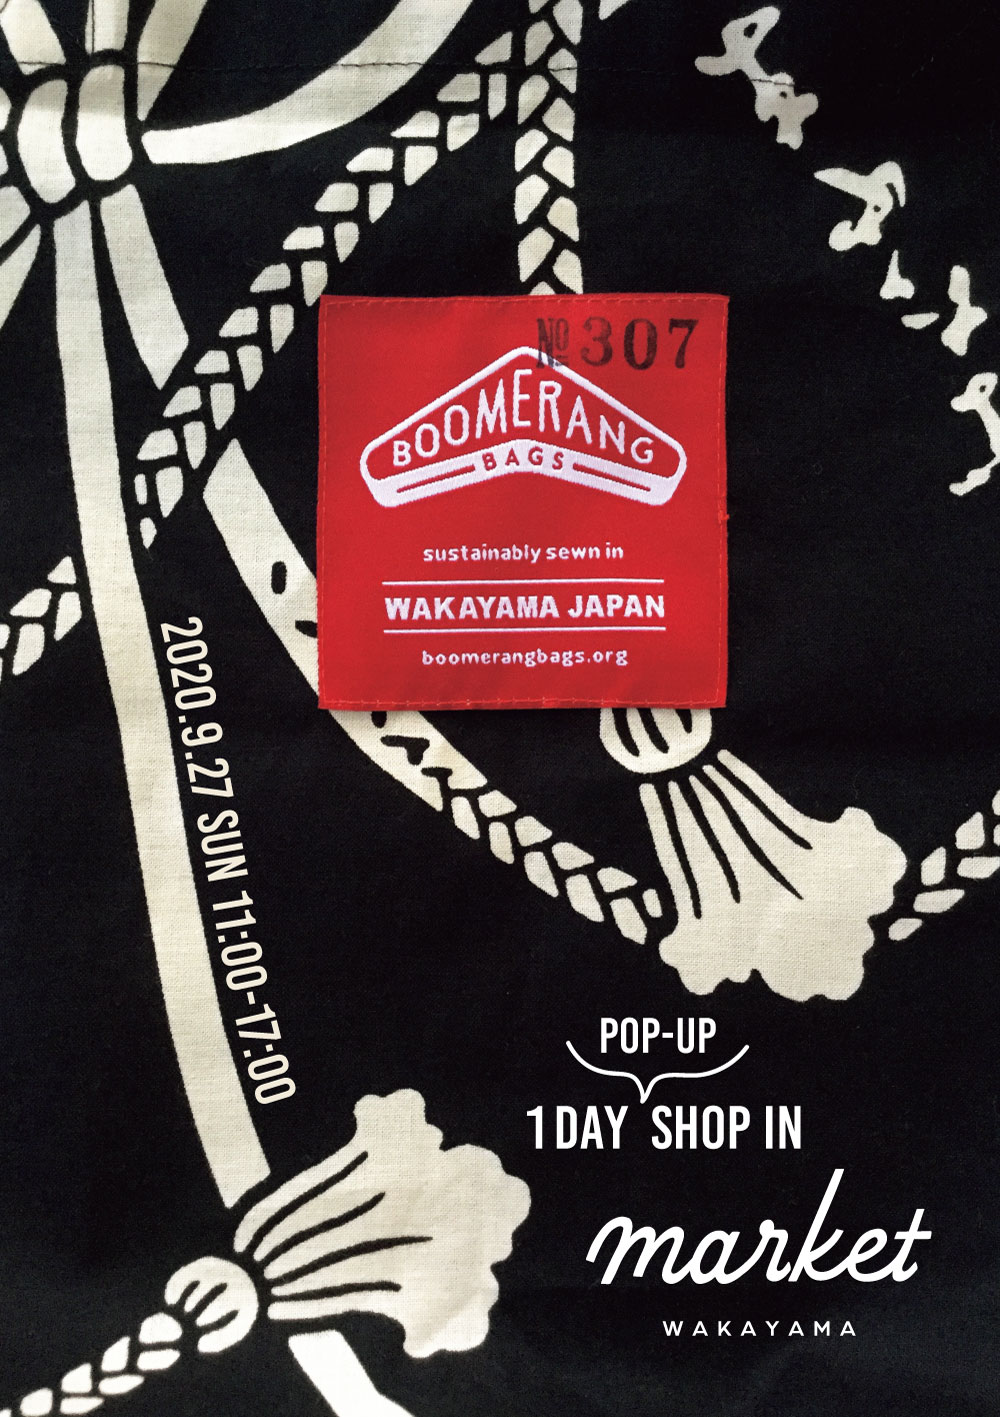 【終了しました】Boomerang Bags 1 DAY POP-UP SHOP@market WAKAYAMA